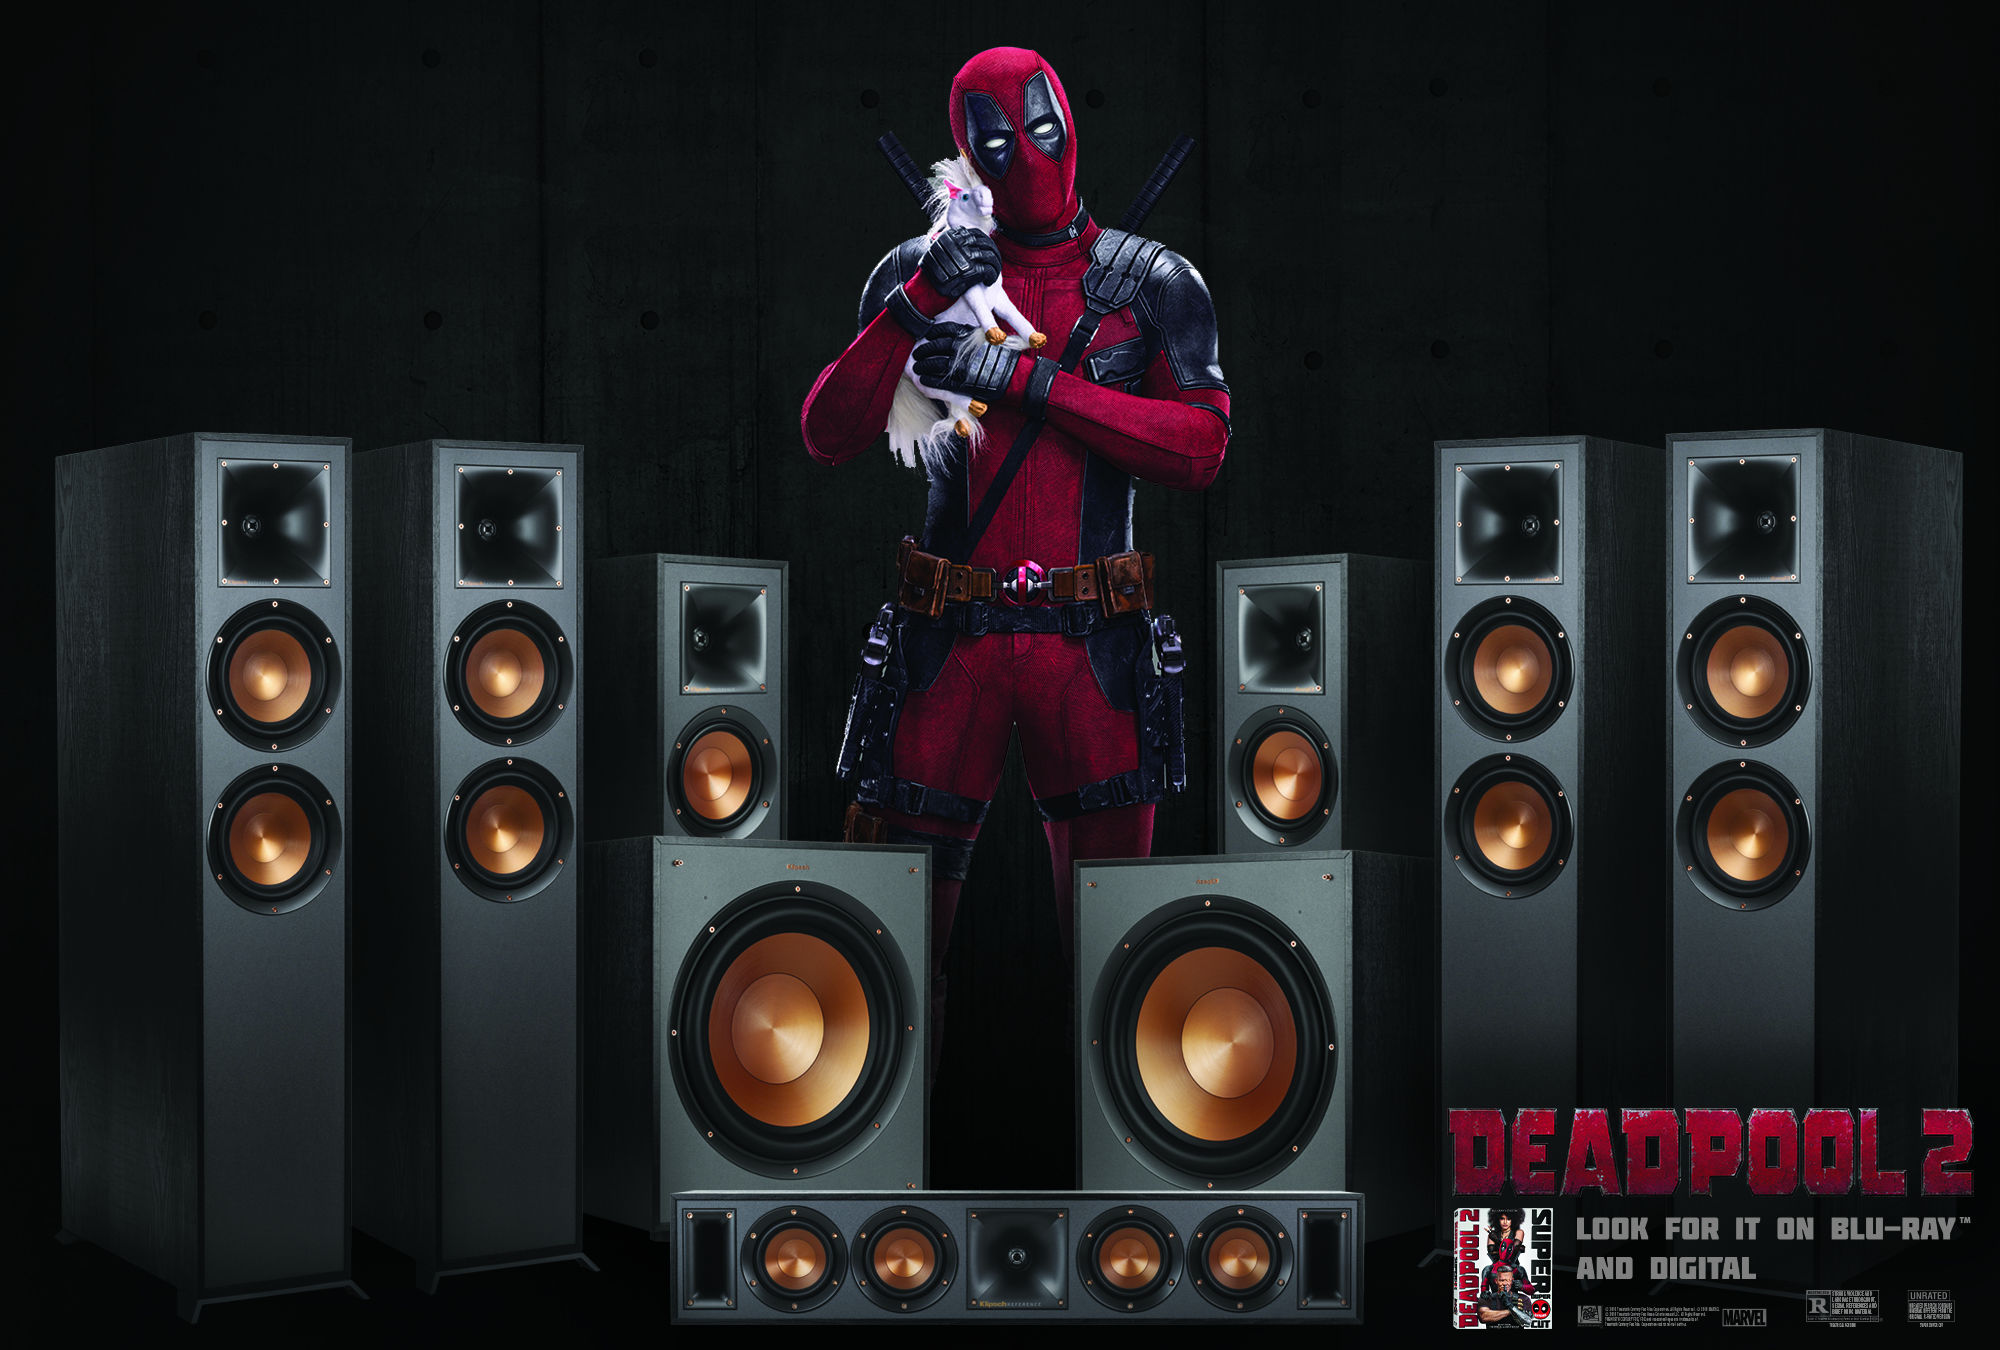 Klipsch Deadpool 2 speaker package